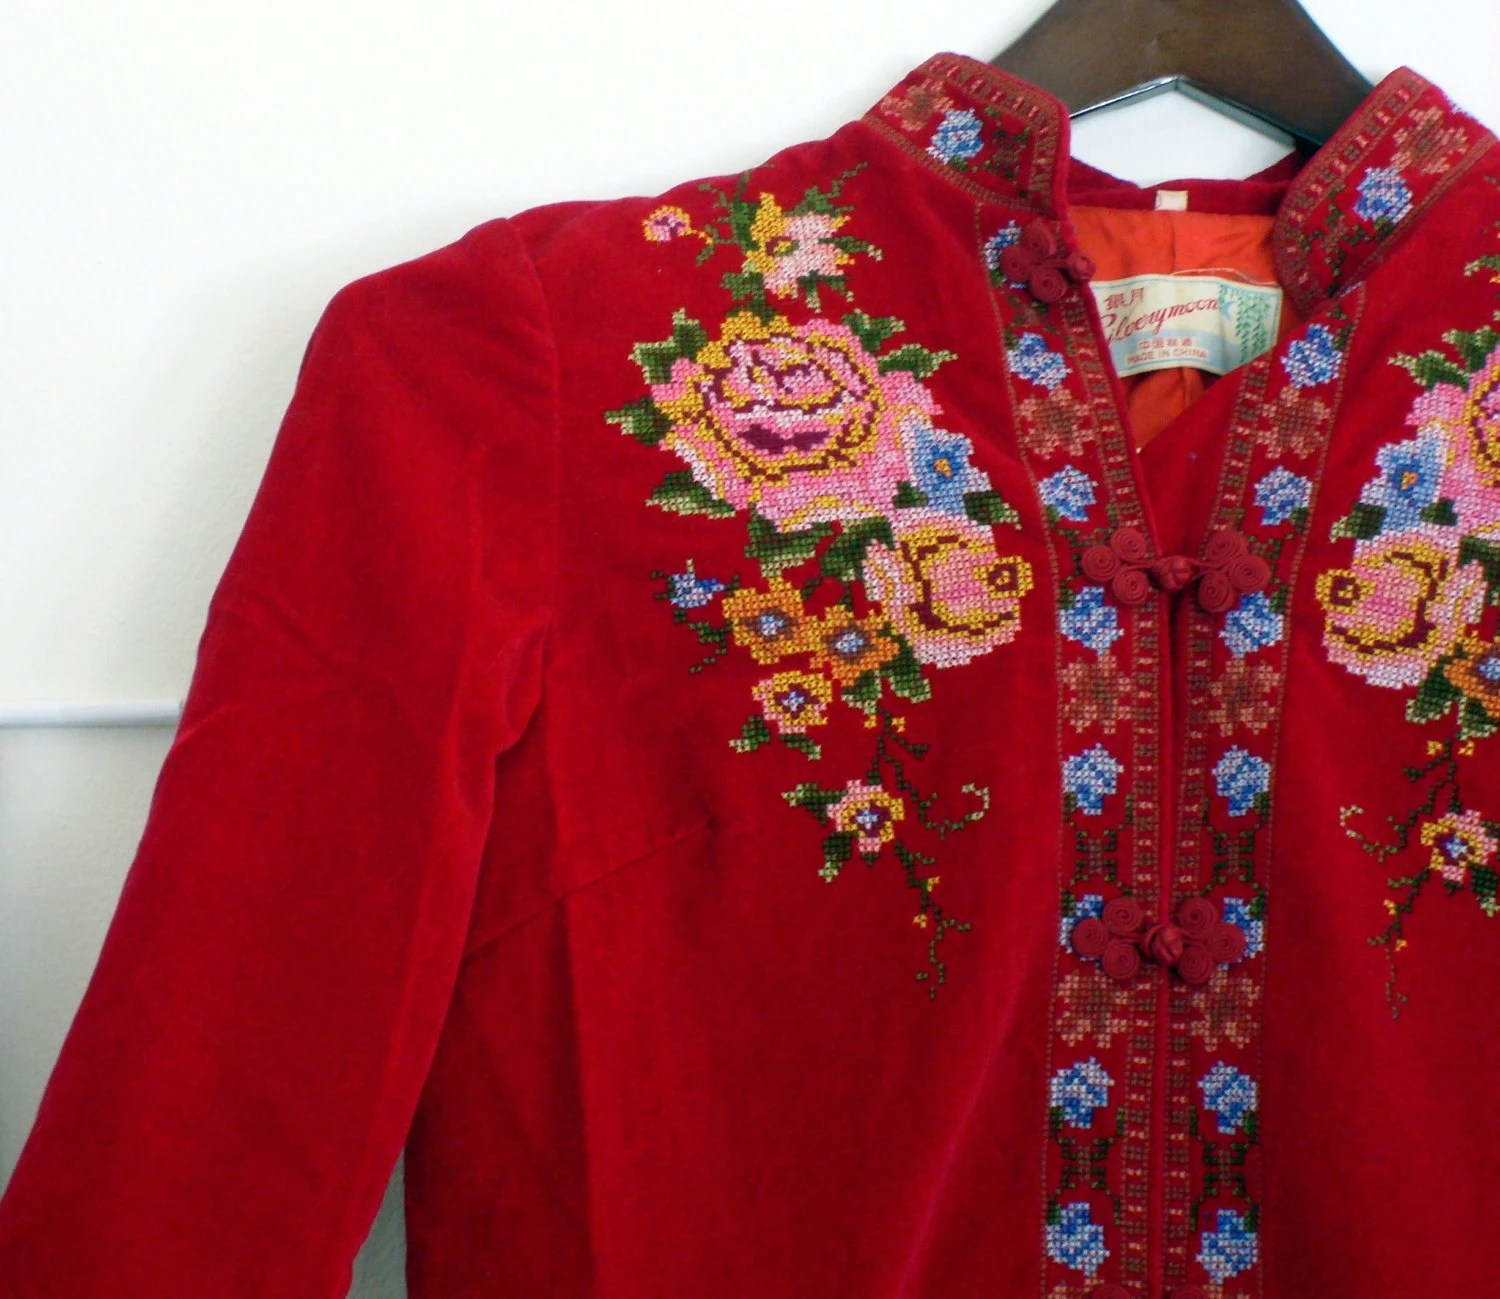 Vintage Chinese Tunic, Hand Embroidered Cross Stitch Red Velvet Long Sleeved Top or Micro Mini Dress - whimsiclecreations